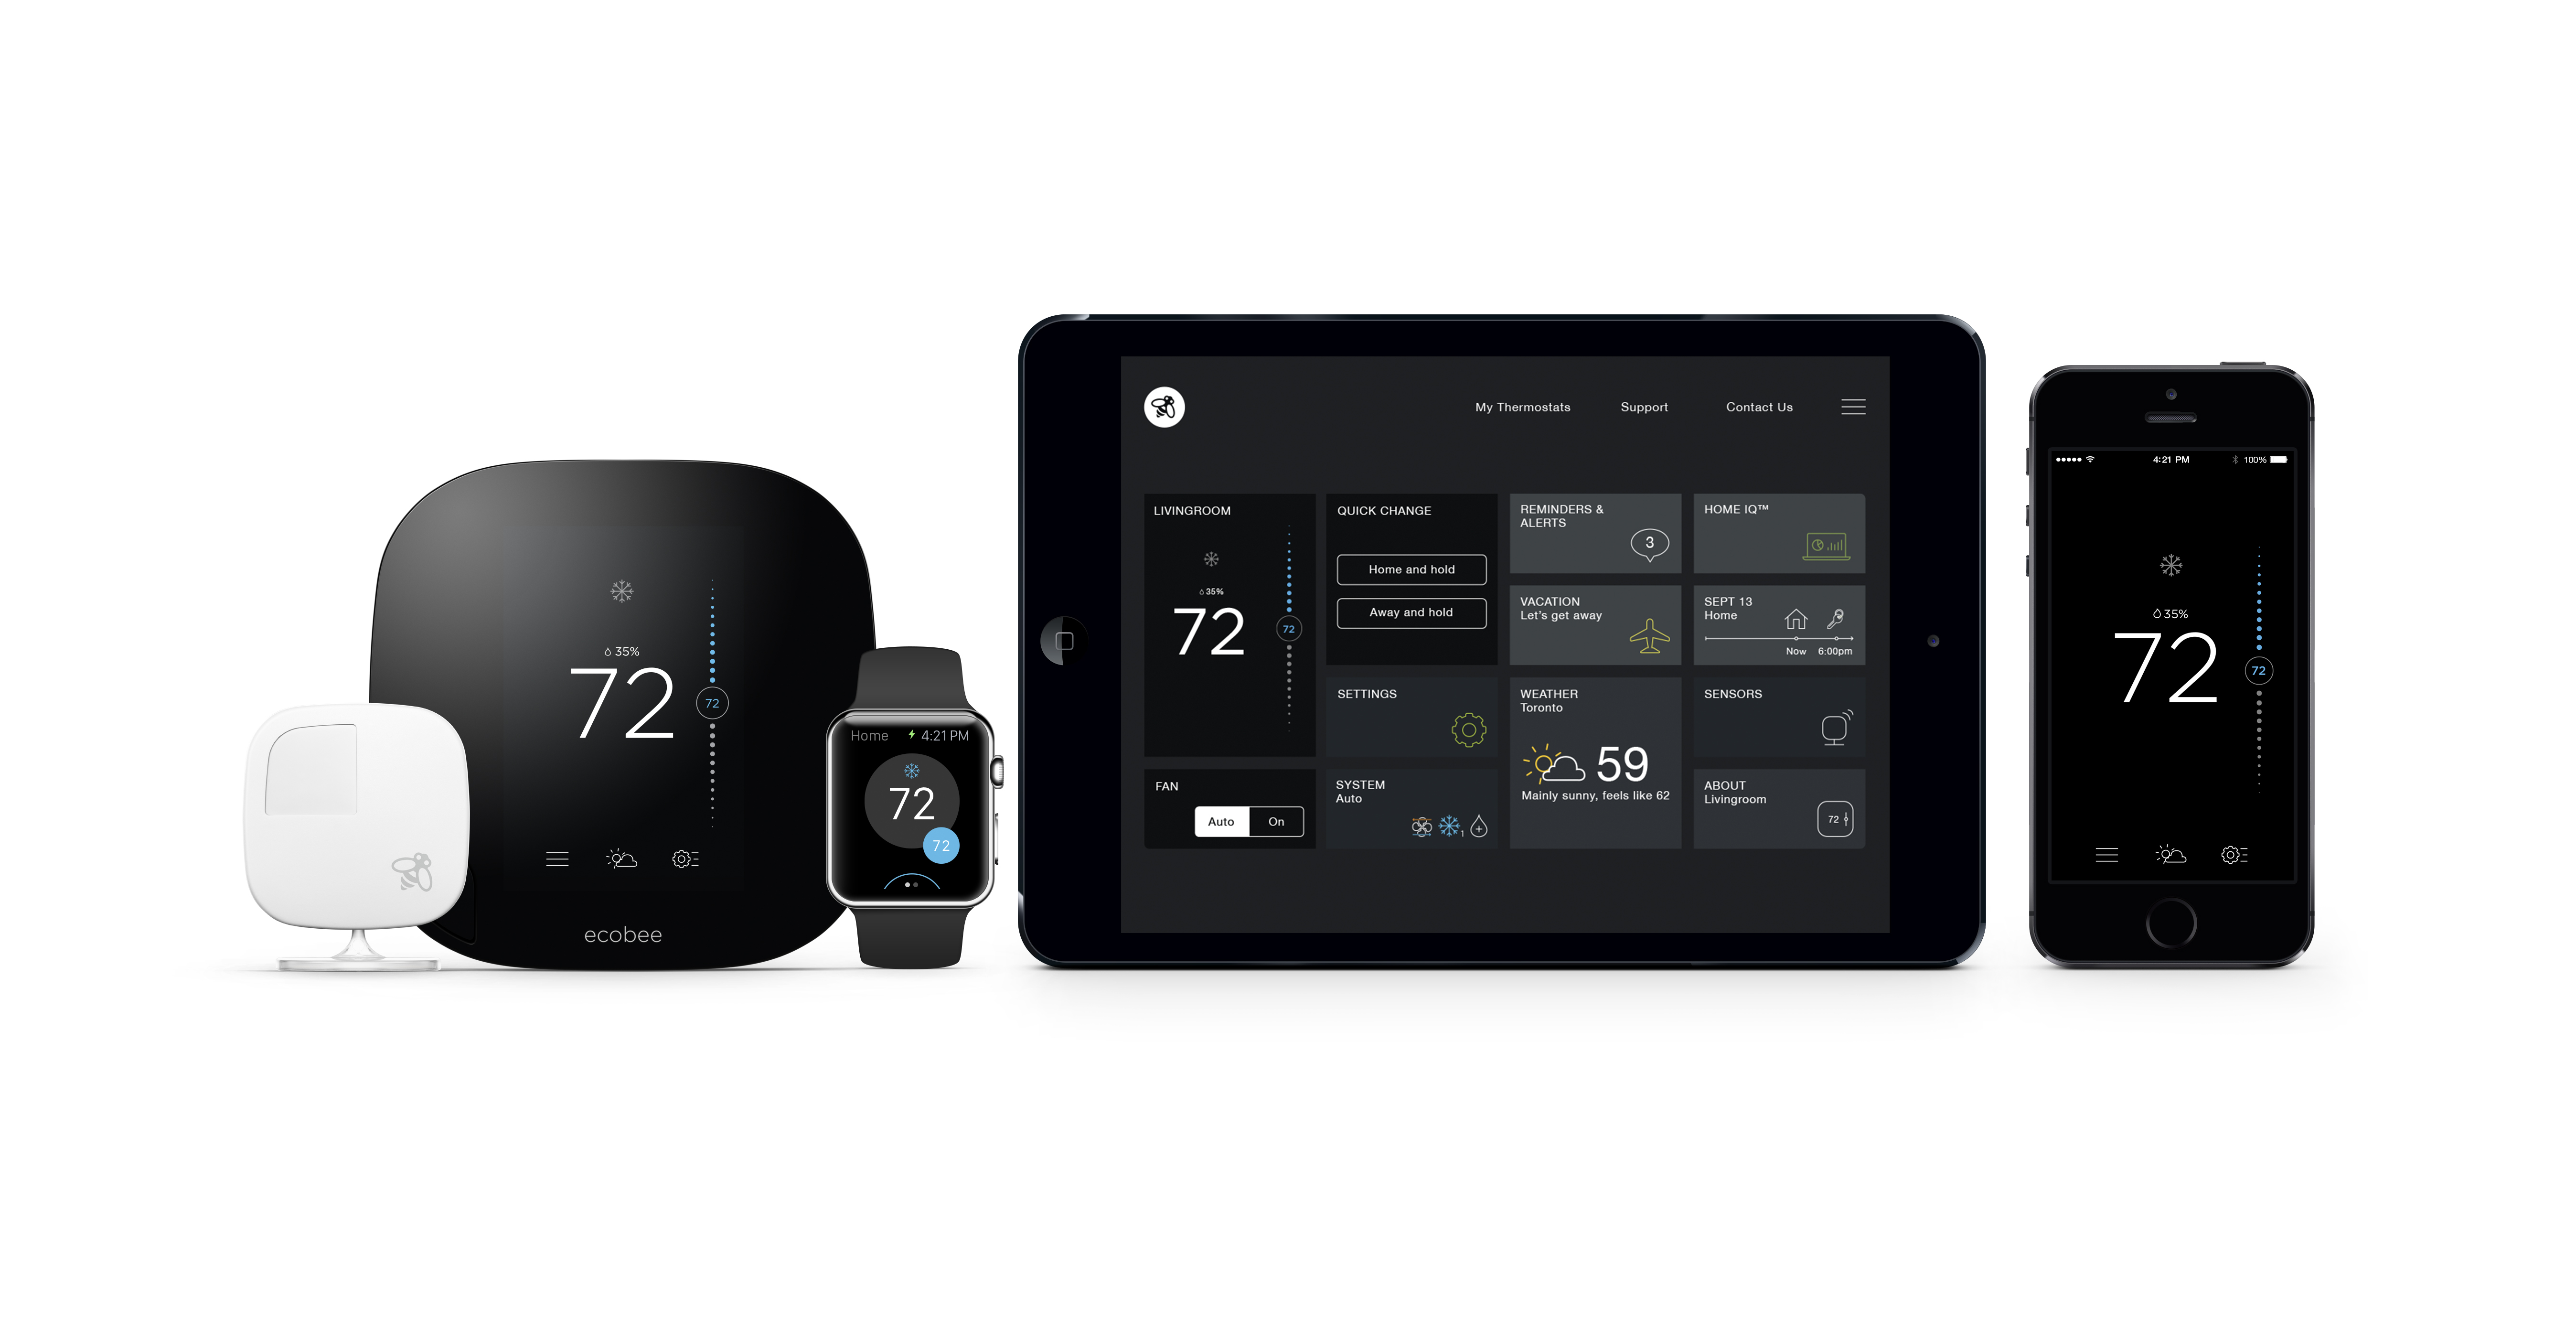 Ecobee Press Room Smart Wifi Thermostats By Ecobee